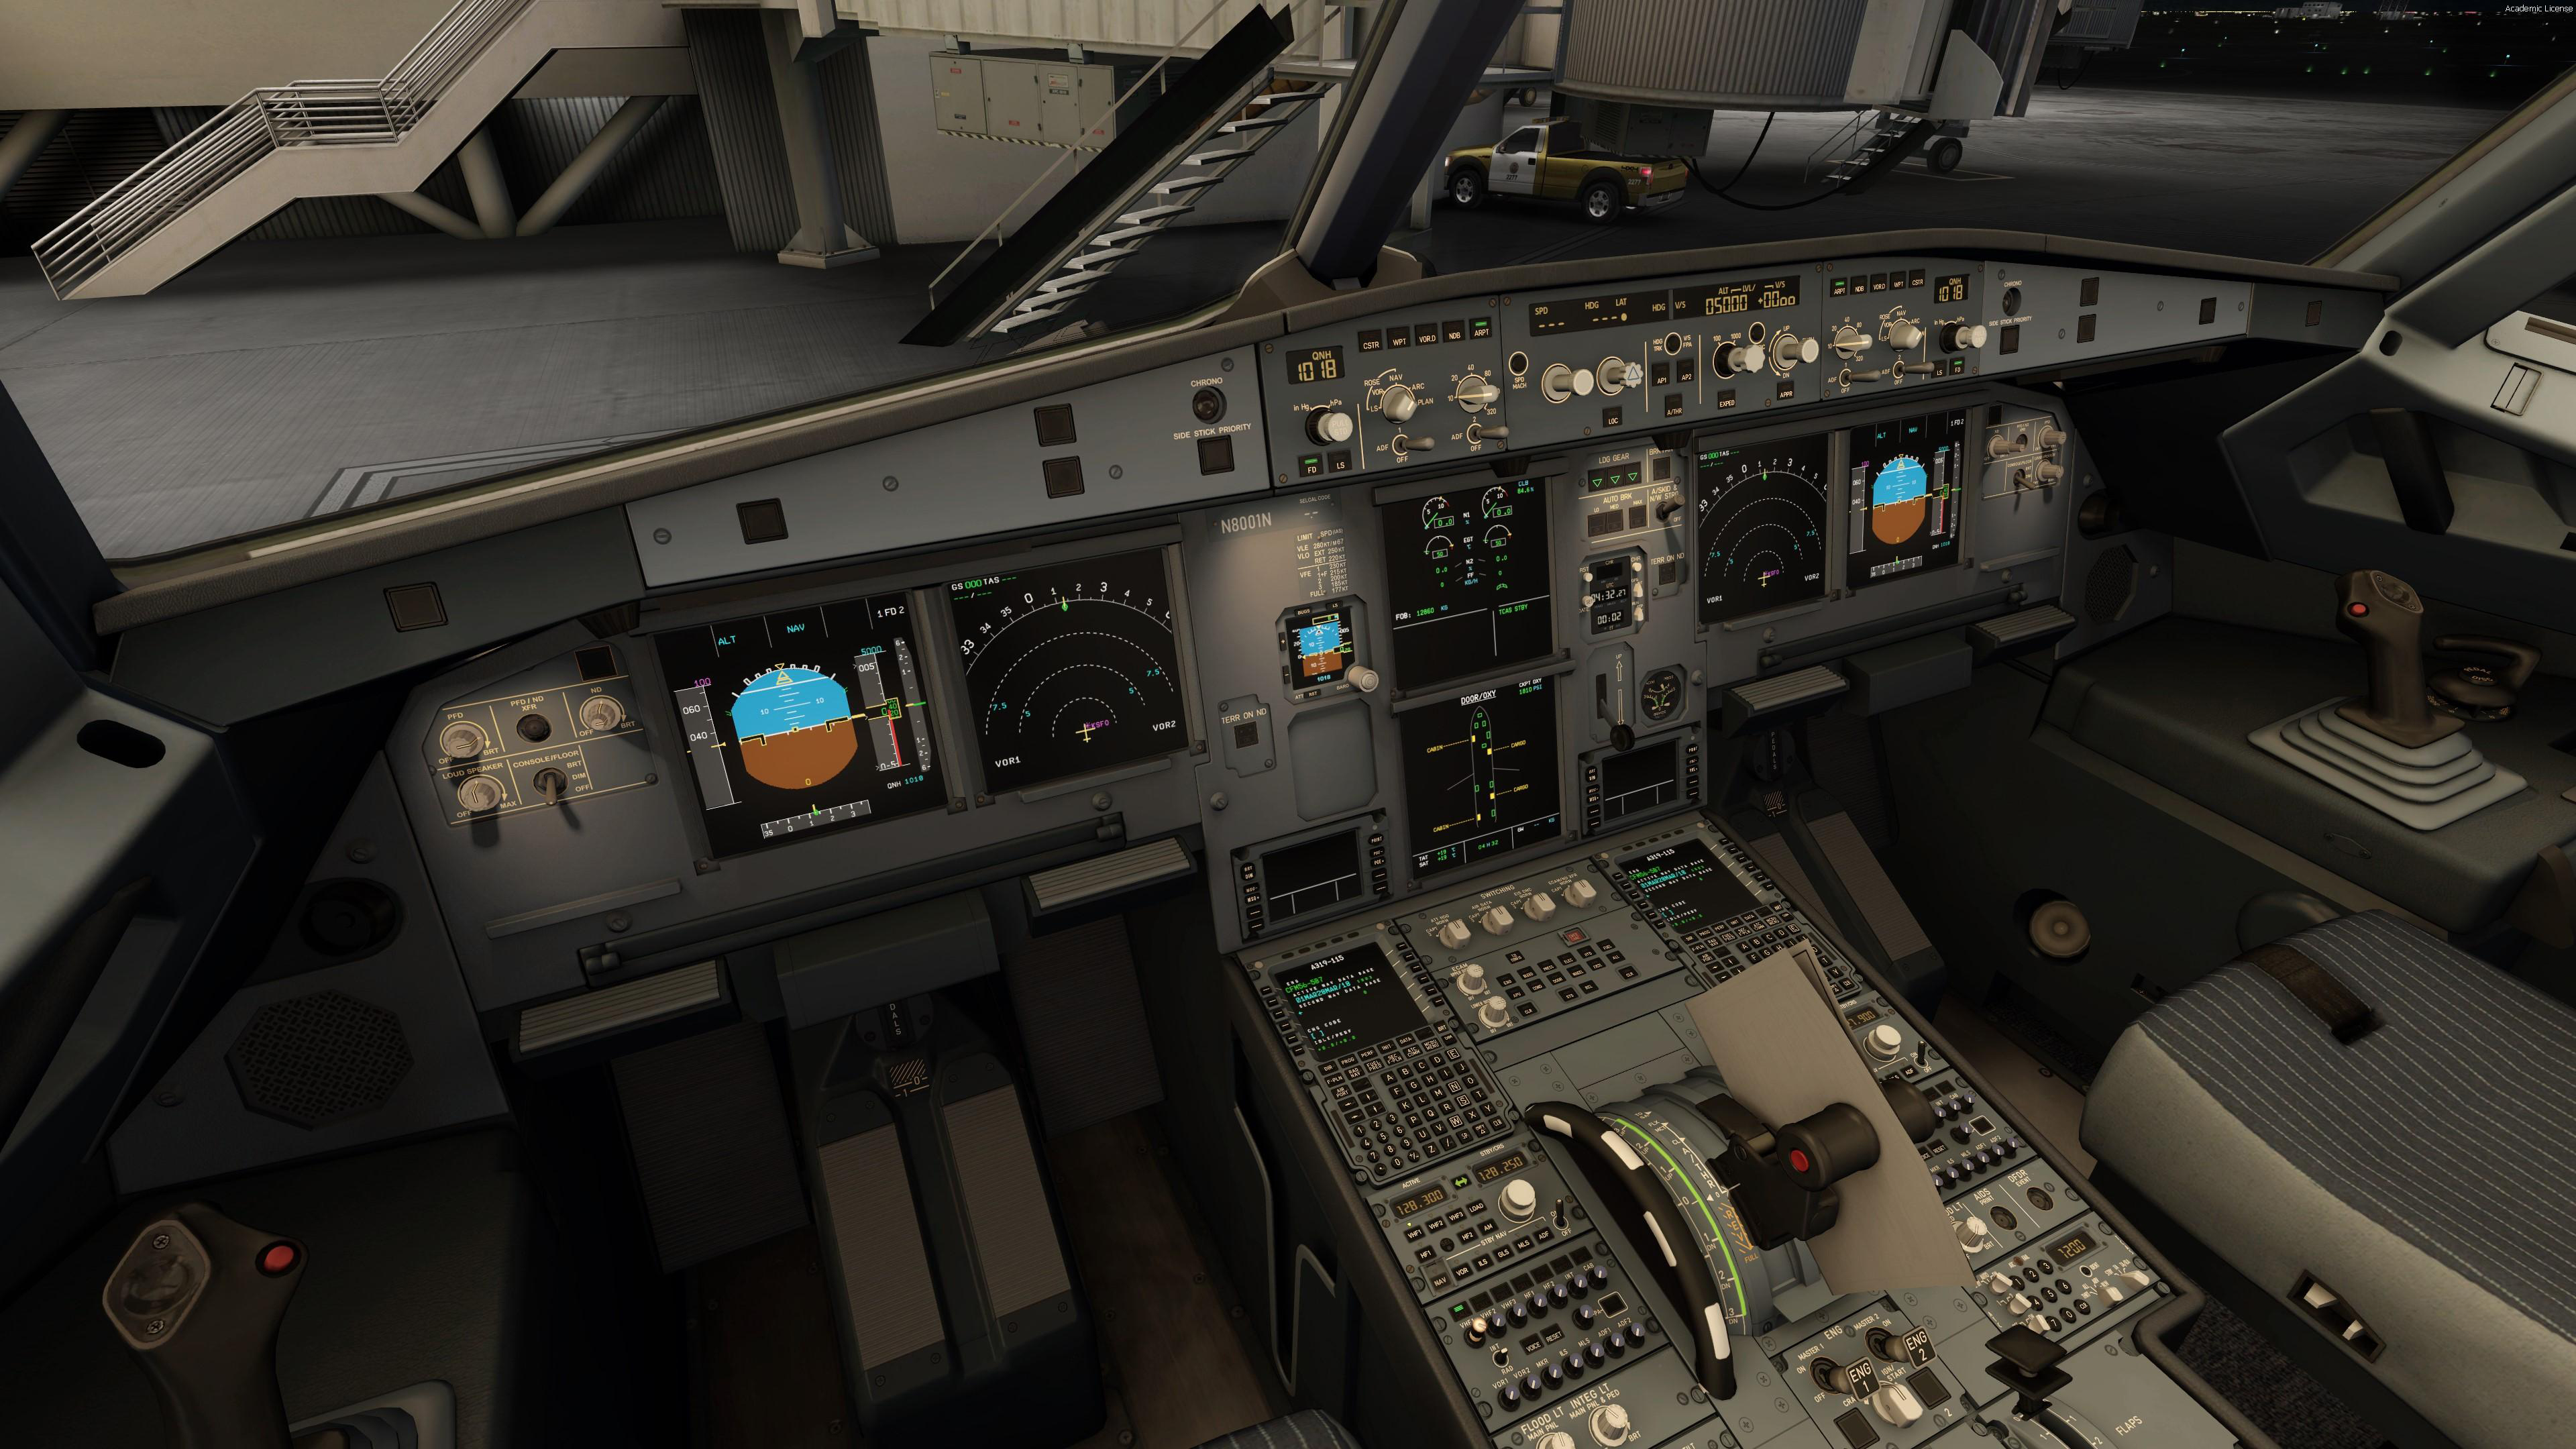 Madison : Fslabs a319 forum